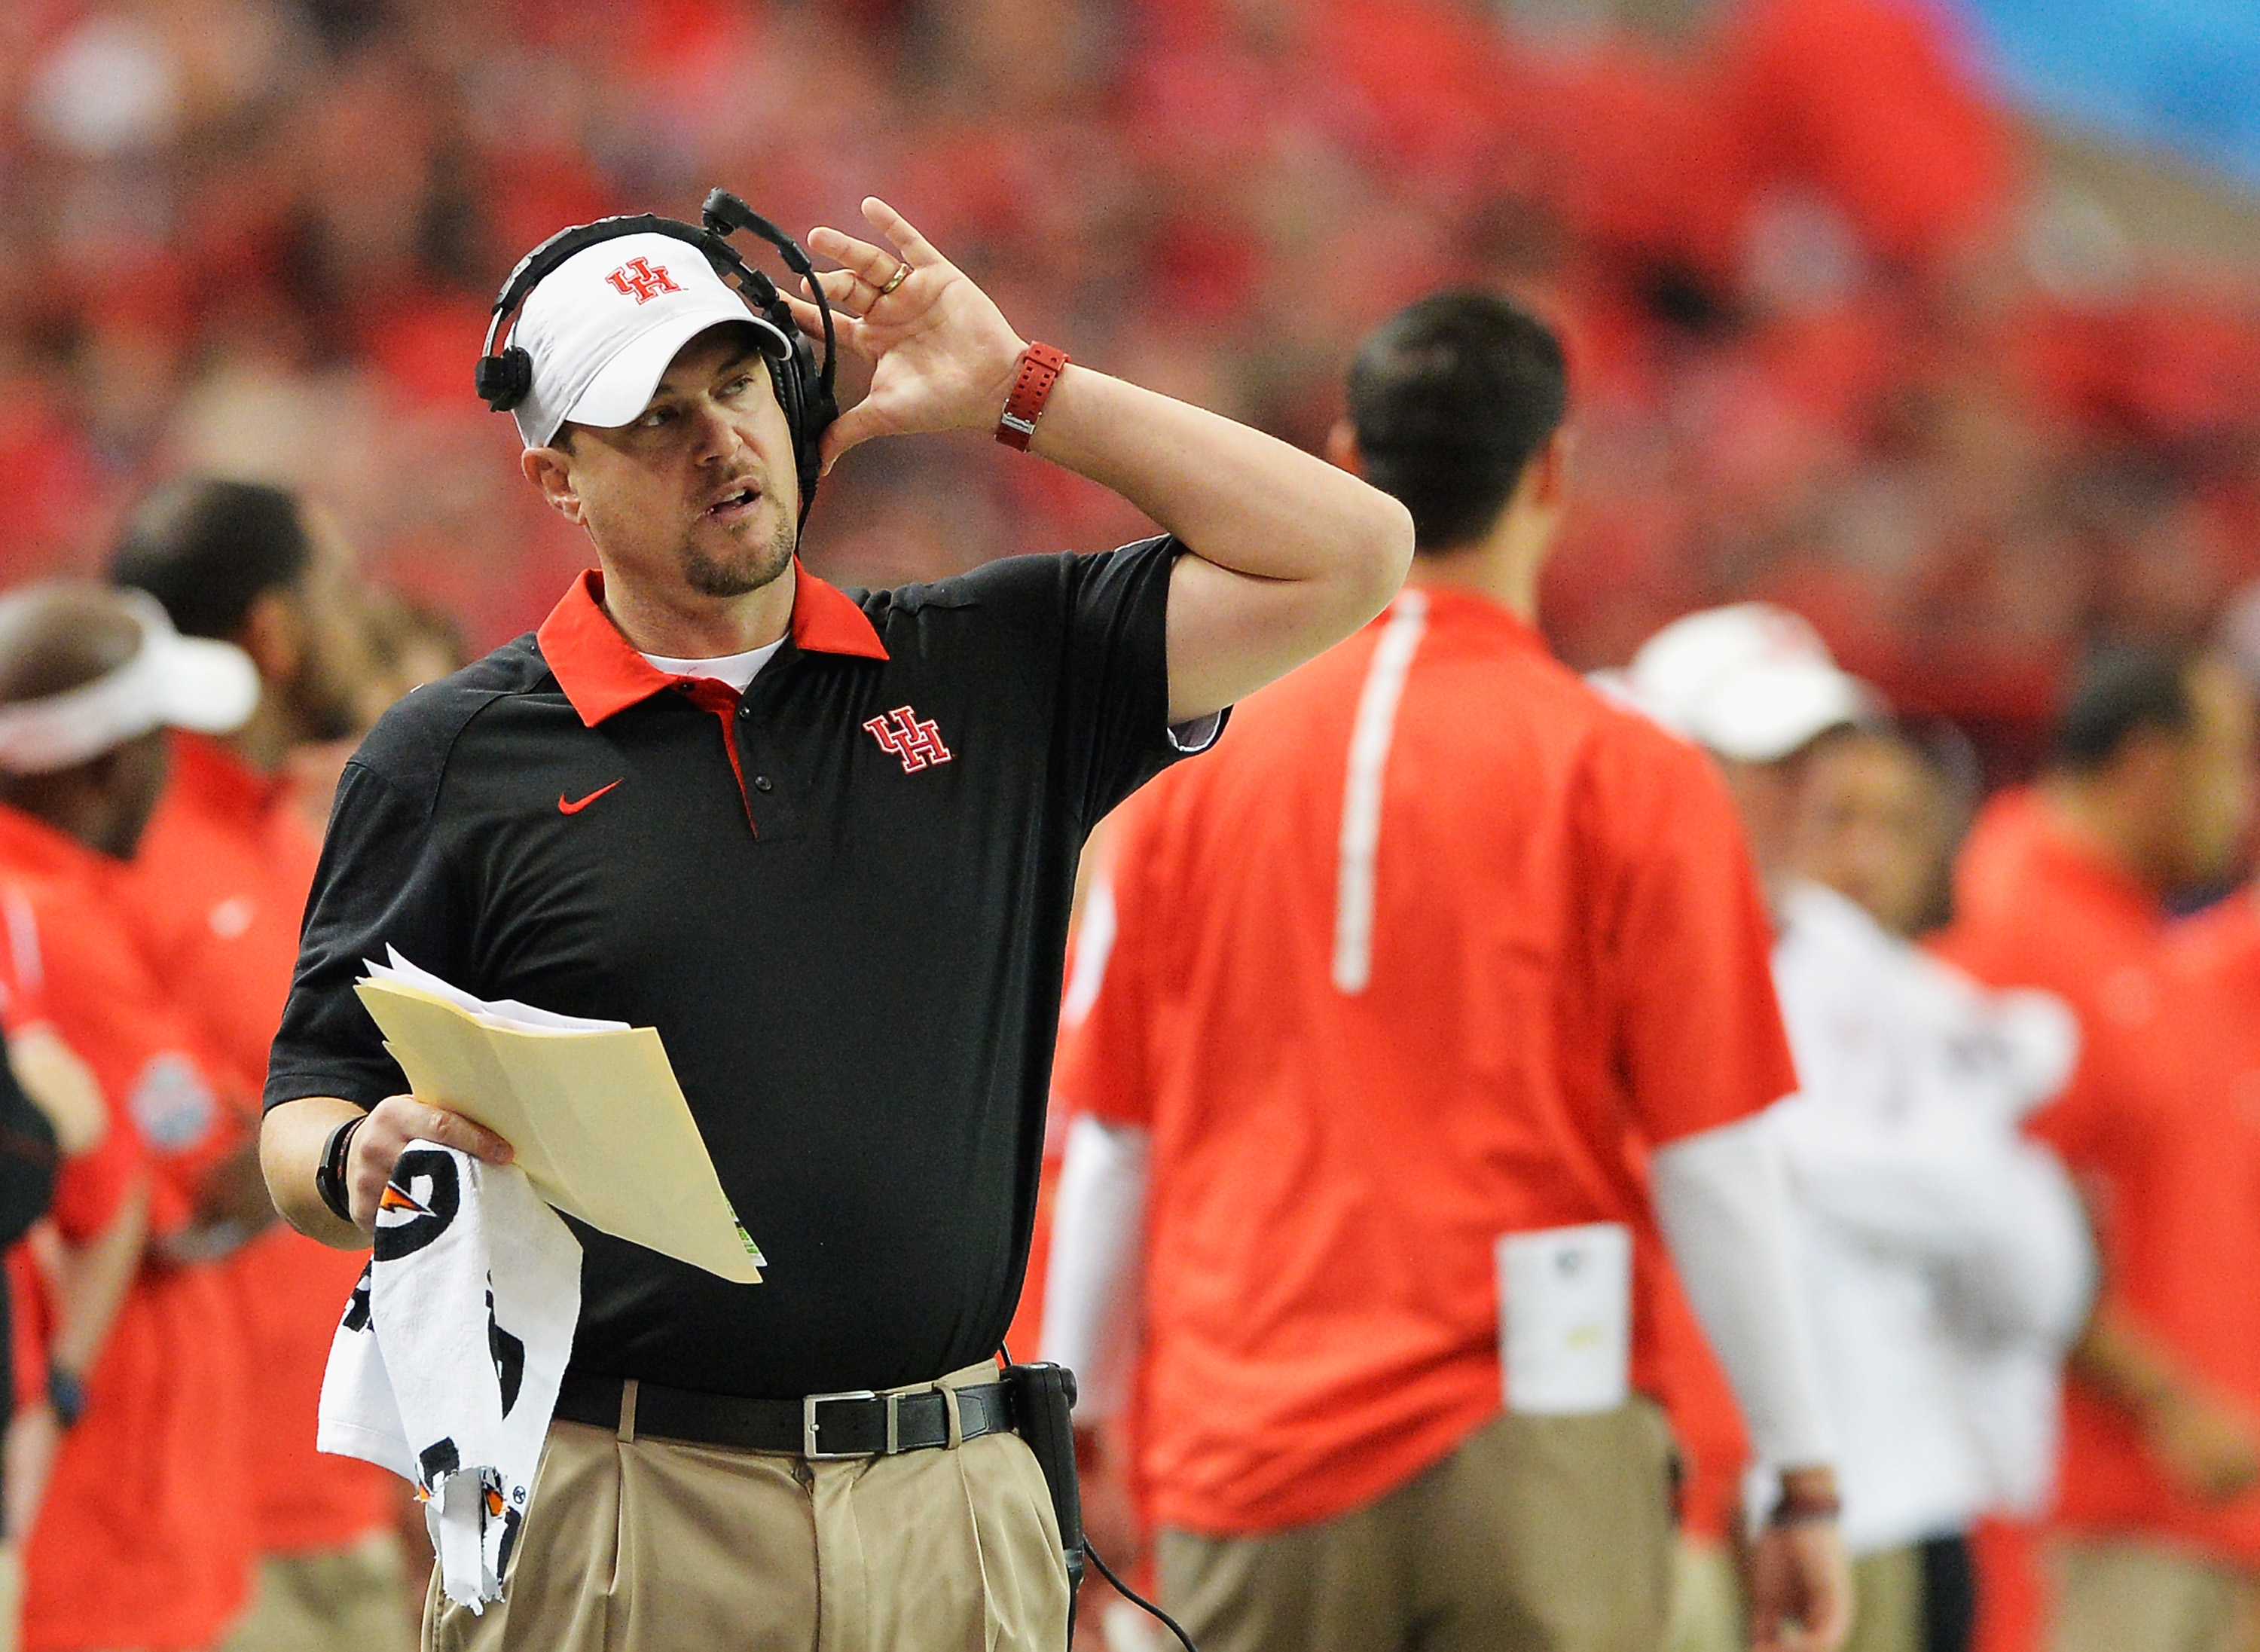 ATLANTA, GA - DECEMBER 31:  Head coach Tom Herman of the Houston Cougars reacts in the first quarter against the Florida State Seminoles during the Chick-fil-A Peach Bowl at the Georgia Dome on December 31, 2015 in Atlanta, Georgia.  (Photo by Grant Halverson/Getty Images)